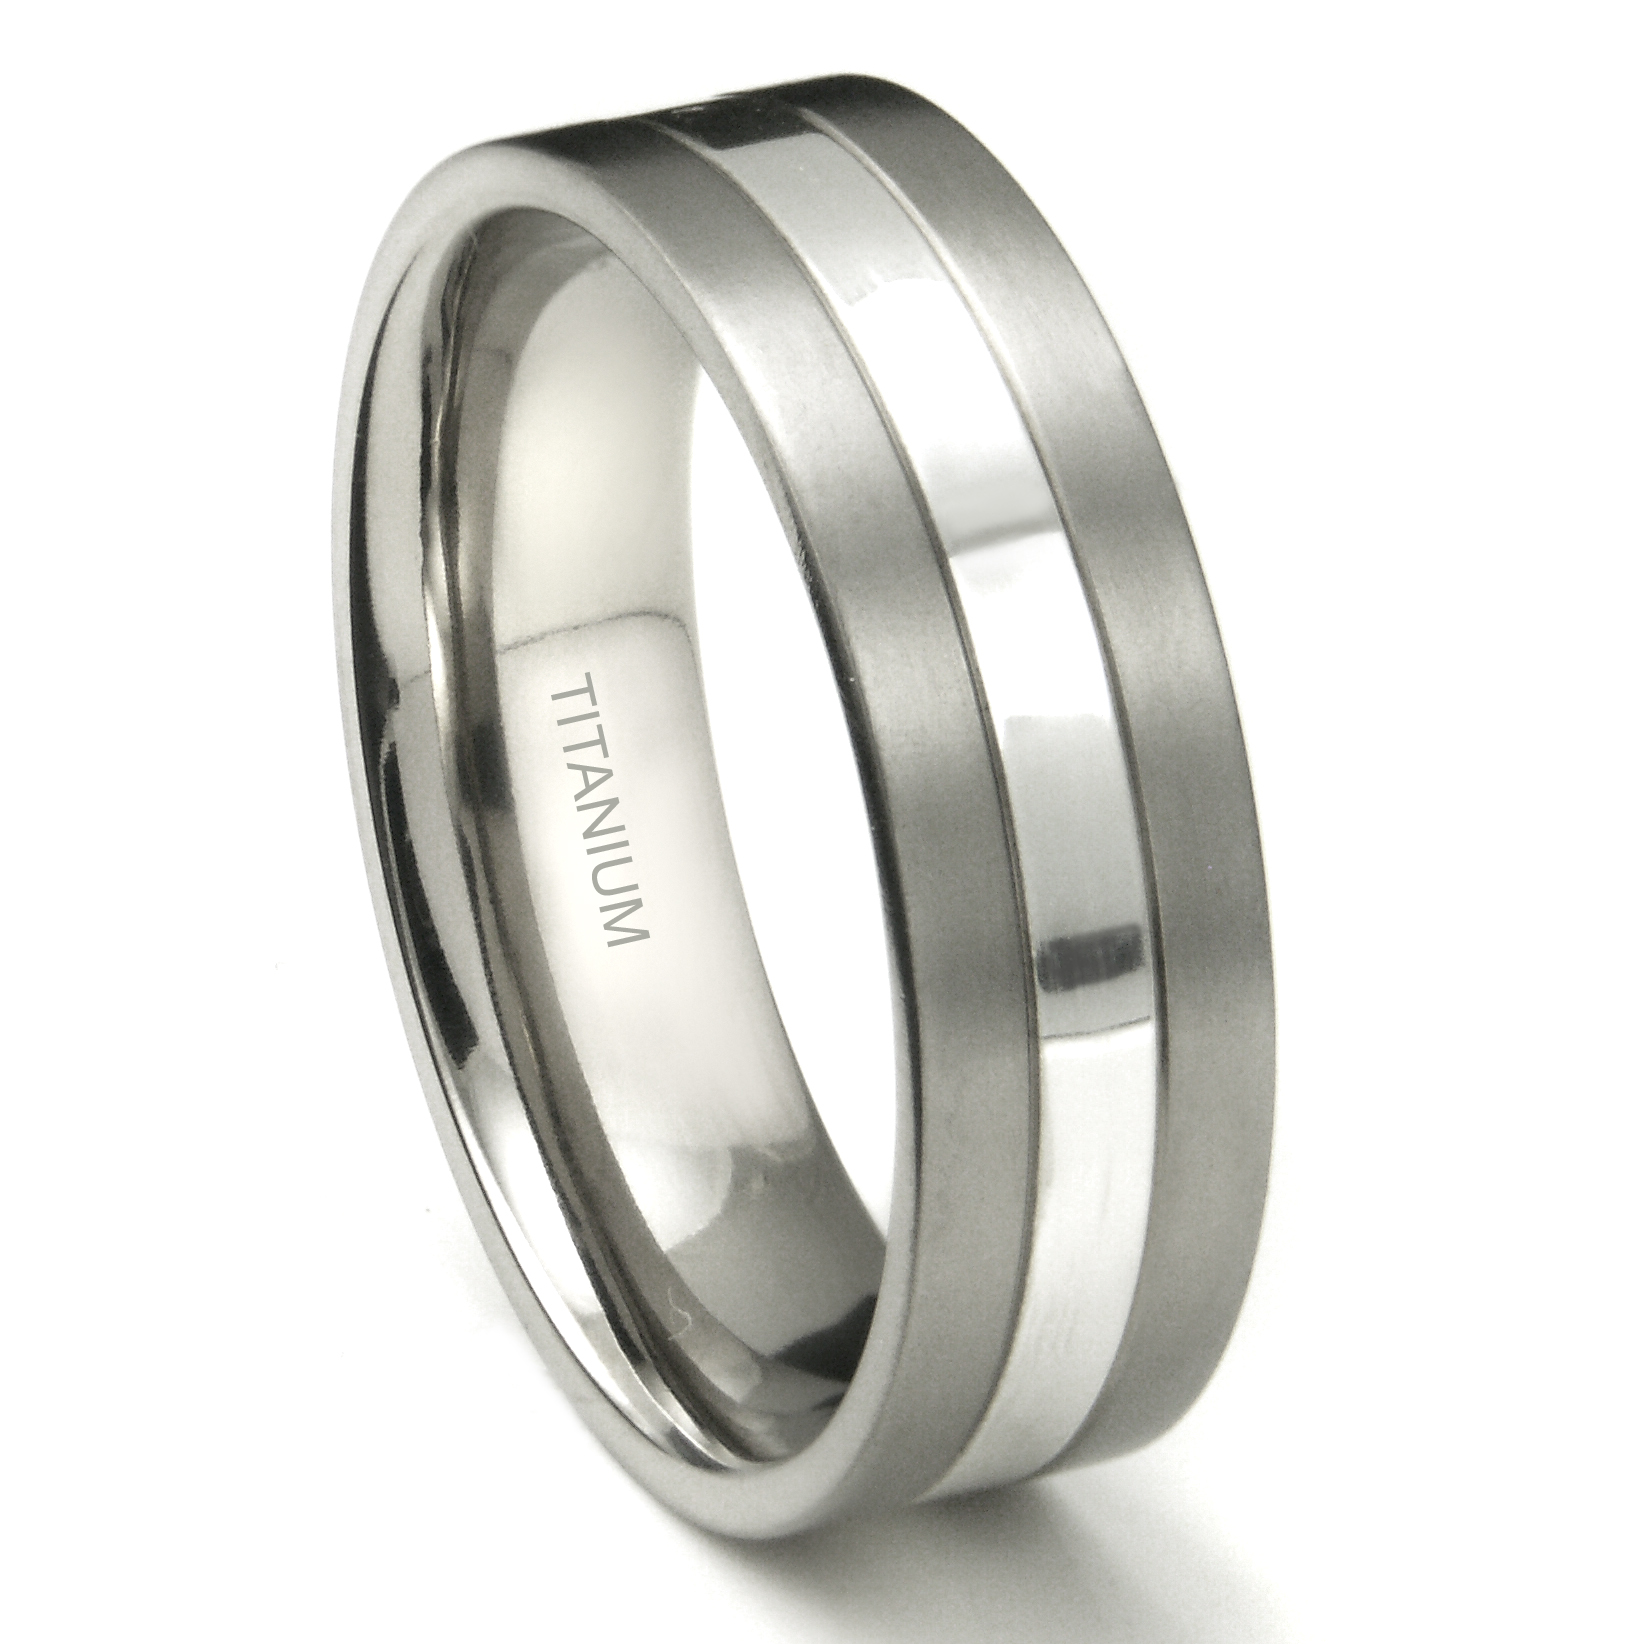 morgiabridal bands of for luxury rings lovely fabulous tungsten wedding com groom matvuk platinum titanium canada